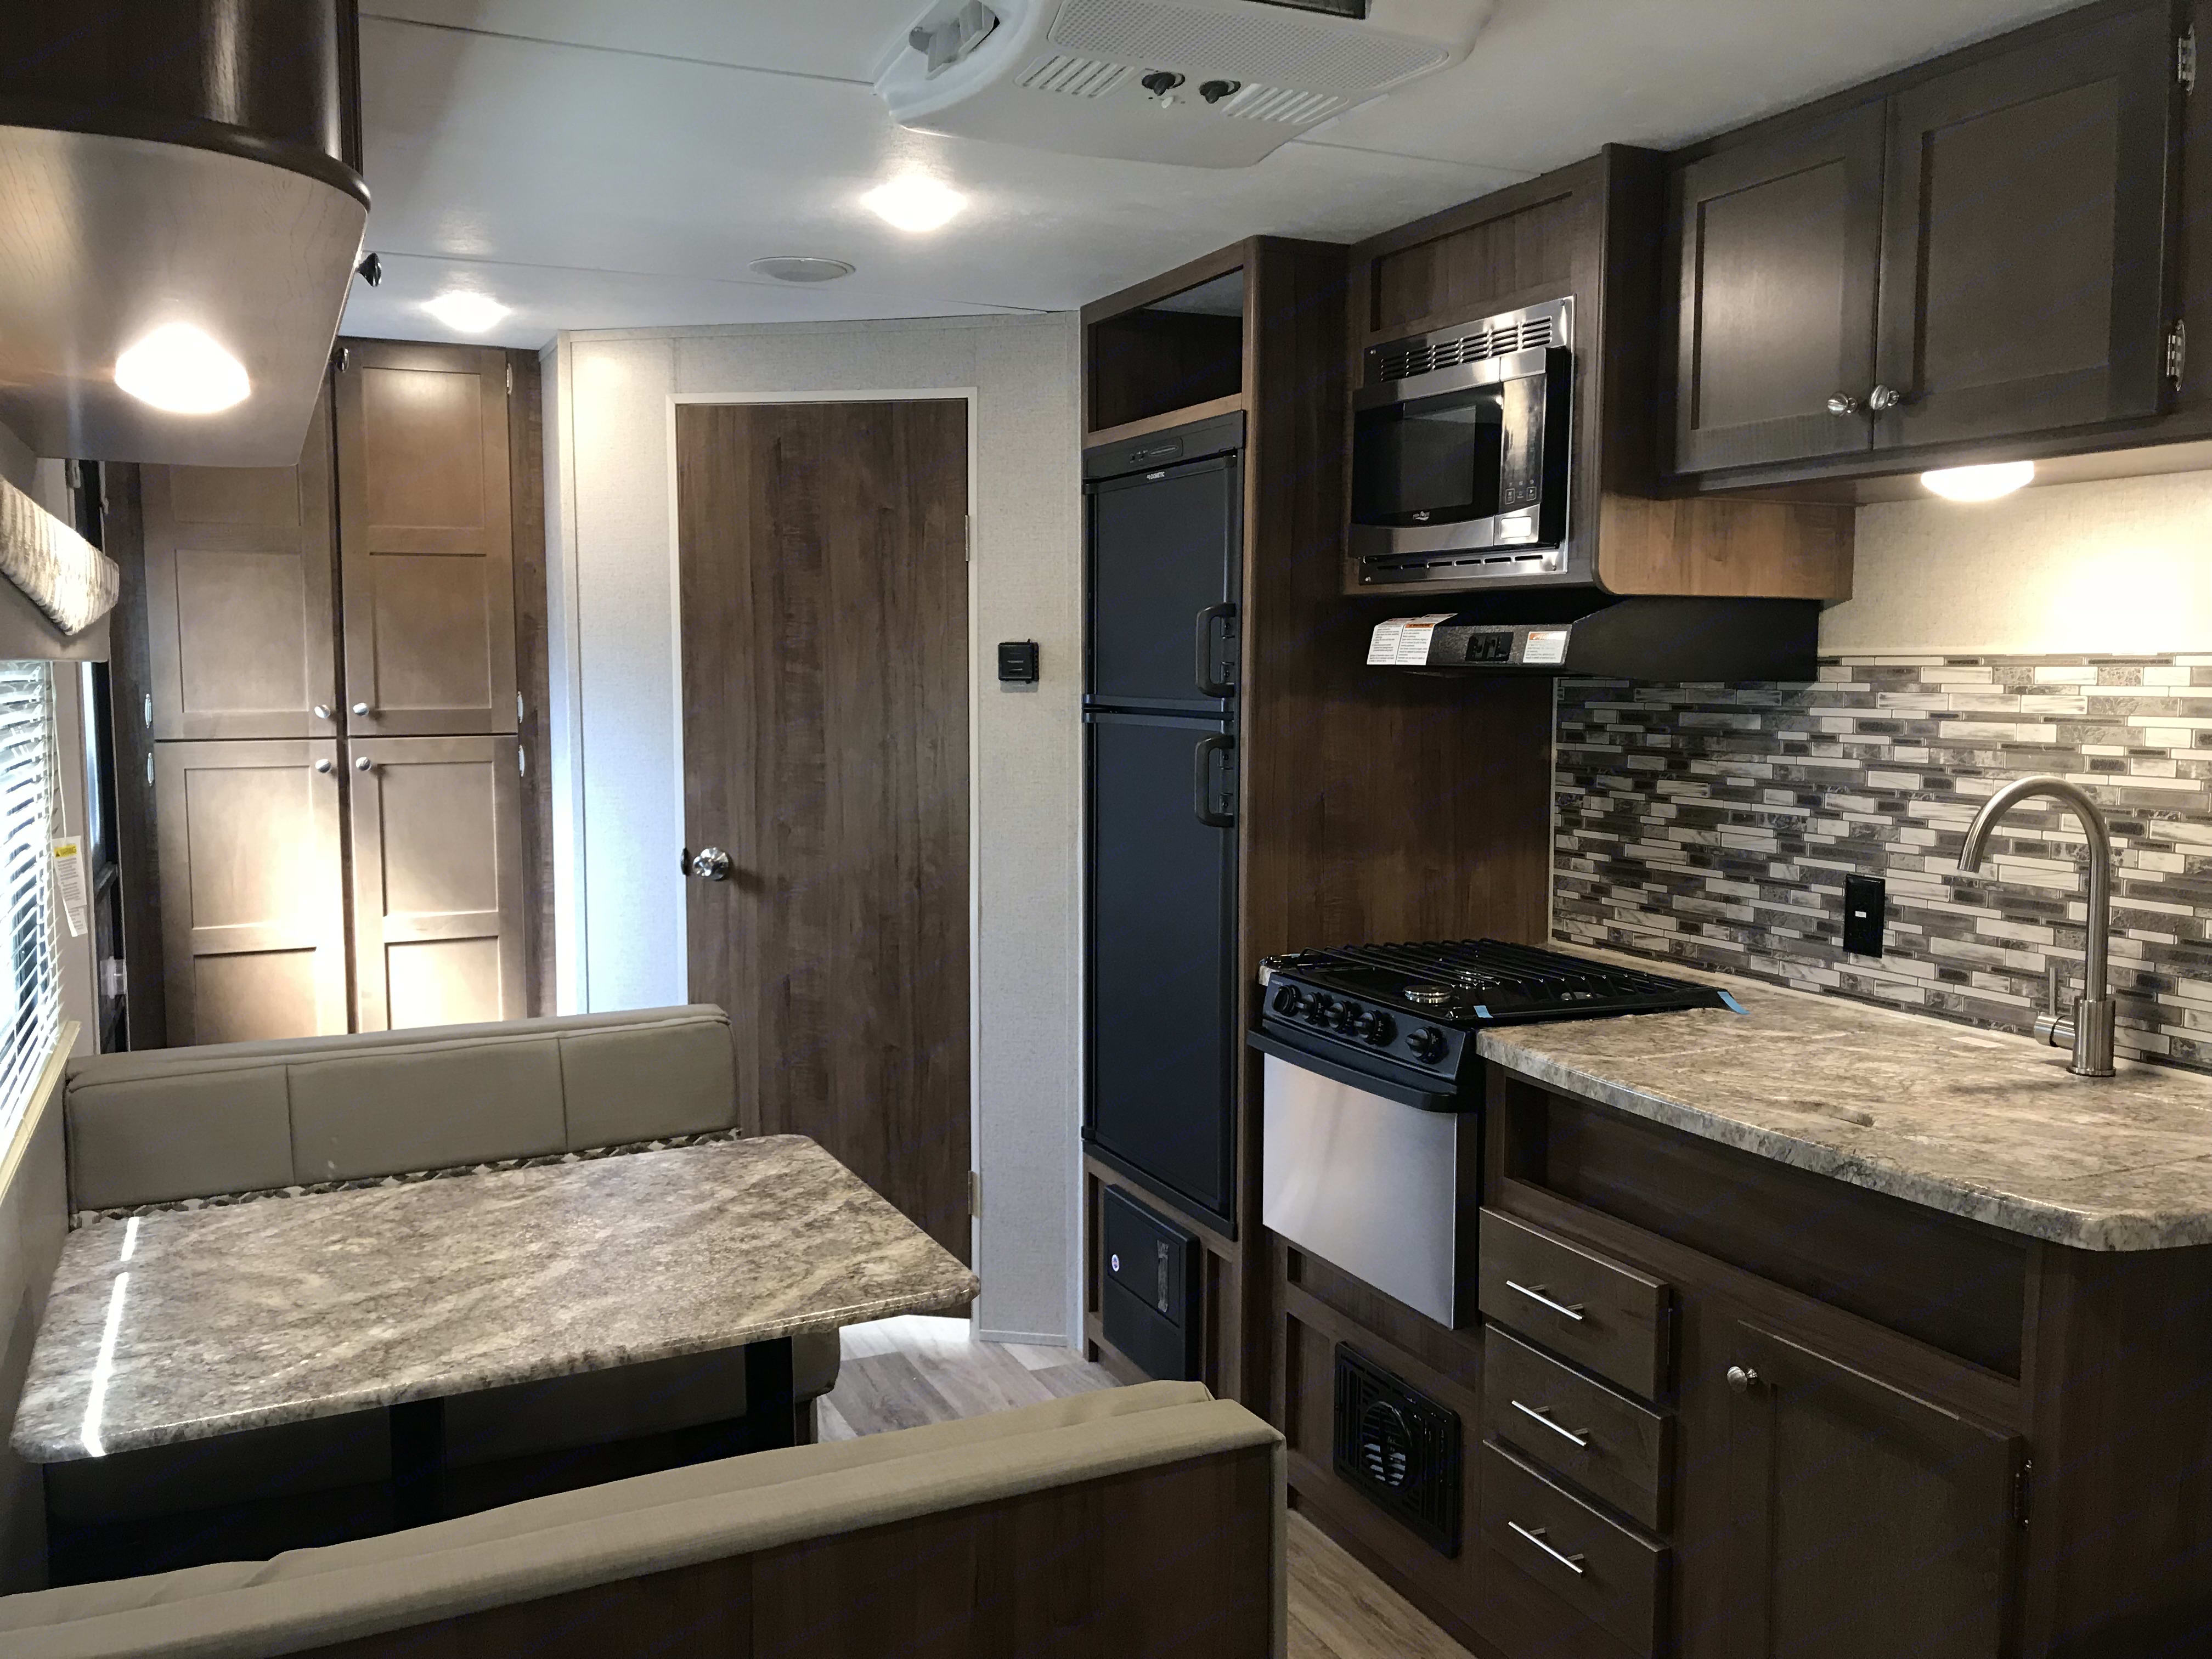 farm sink, microwave, stove w/range hood and oven, gas and electric refrigerator. ASPEN TRAIL 1900rb 2020